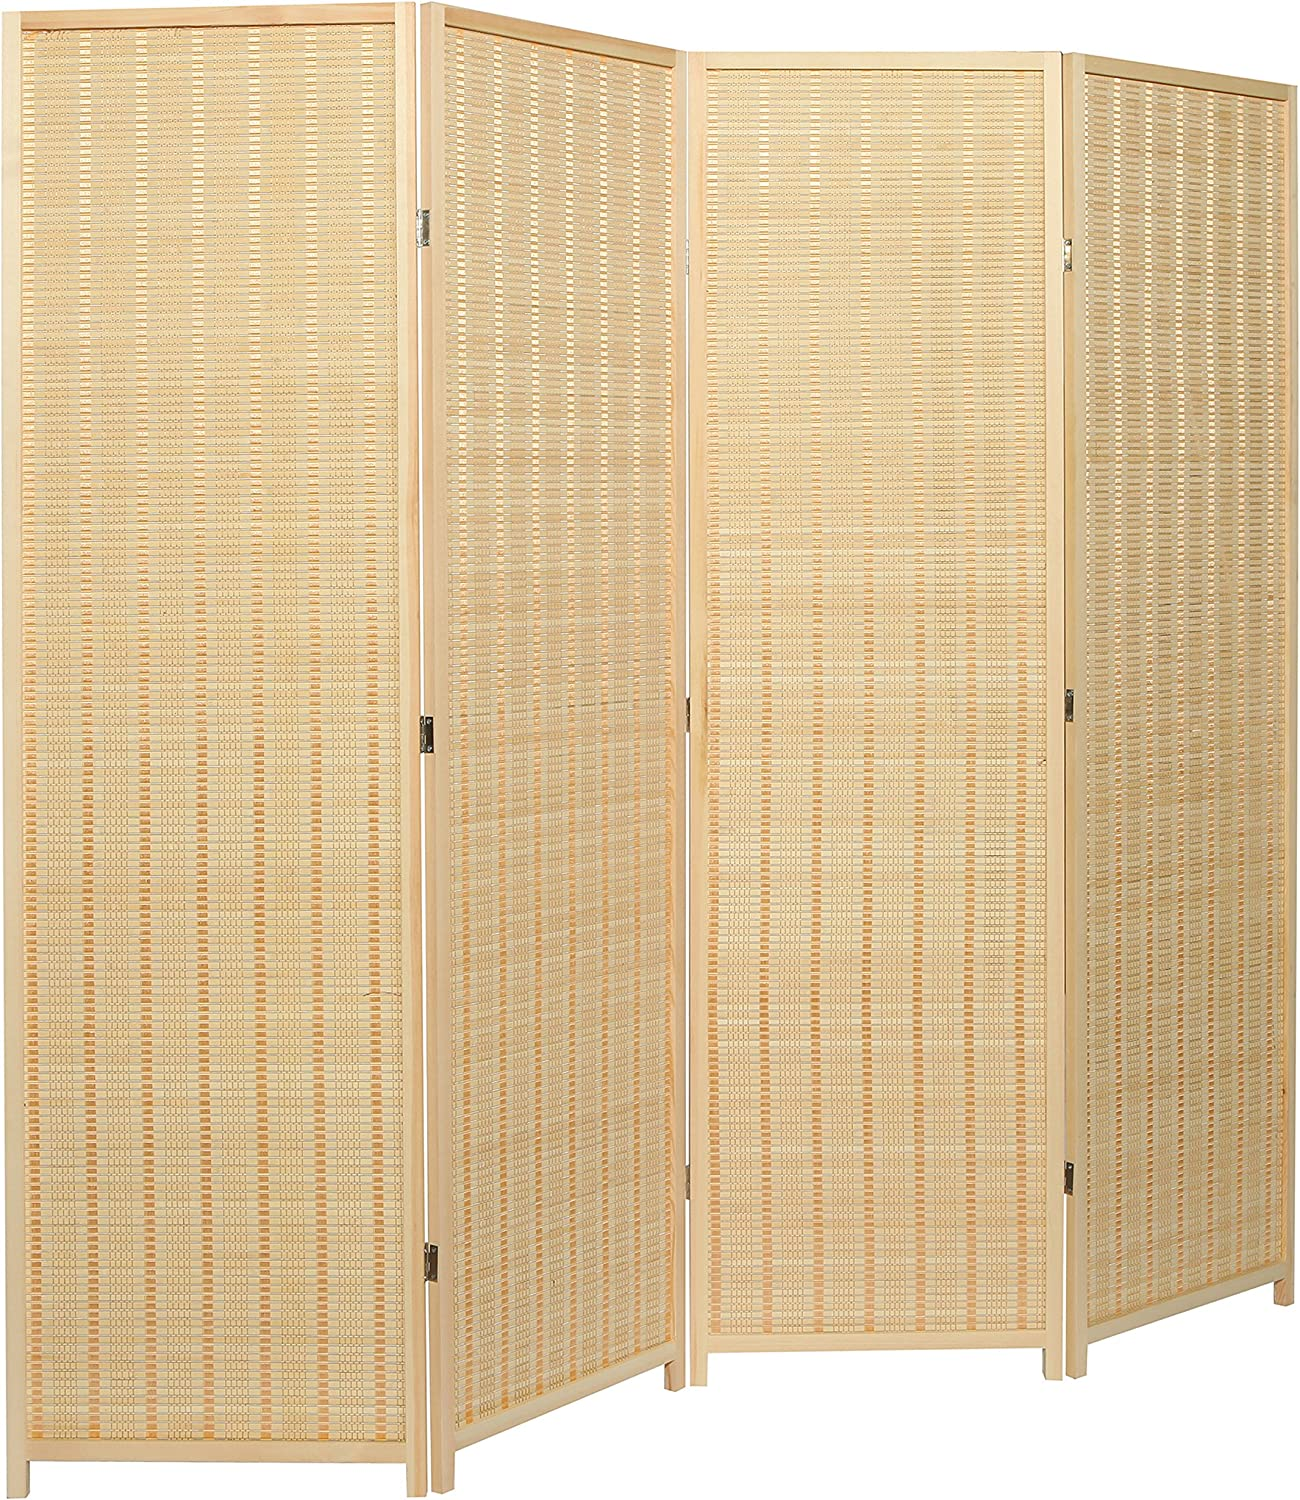 Amazon Com Mygift Decorative Freestanding Beige Woven Bamboo 4 Panel Hinged Privacy Screen Portable Folding Room Divider Furniture Decor